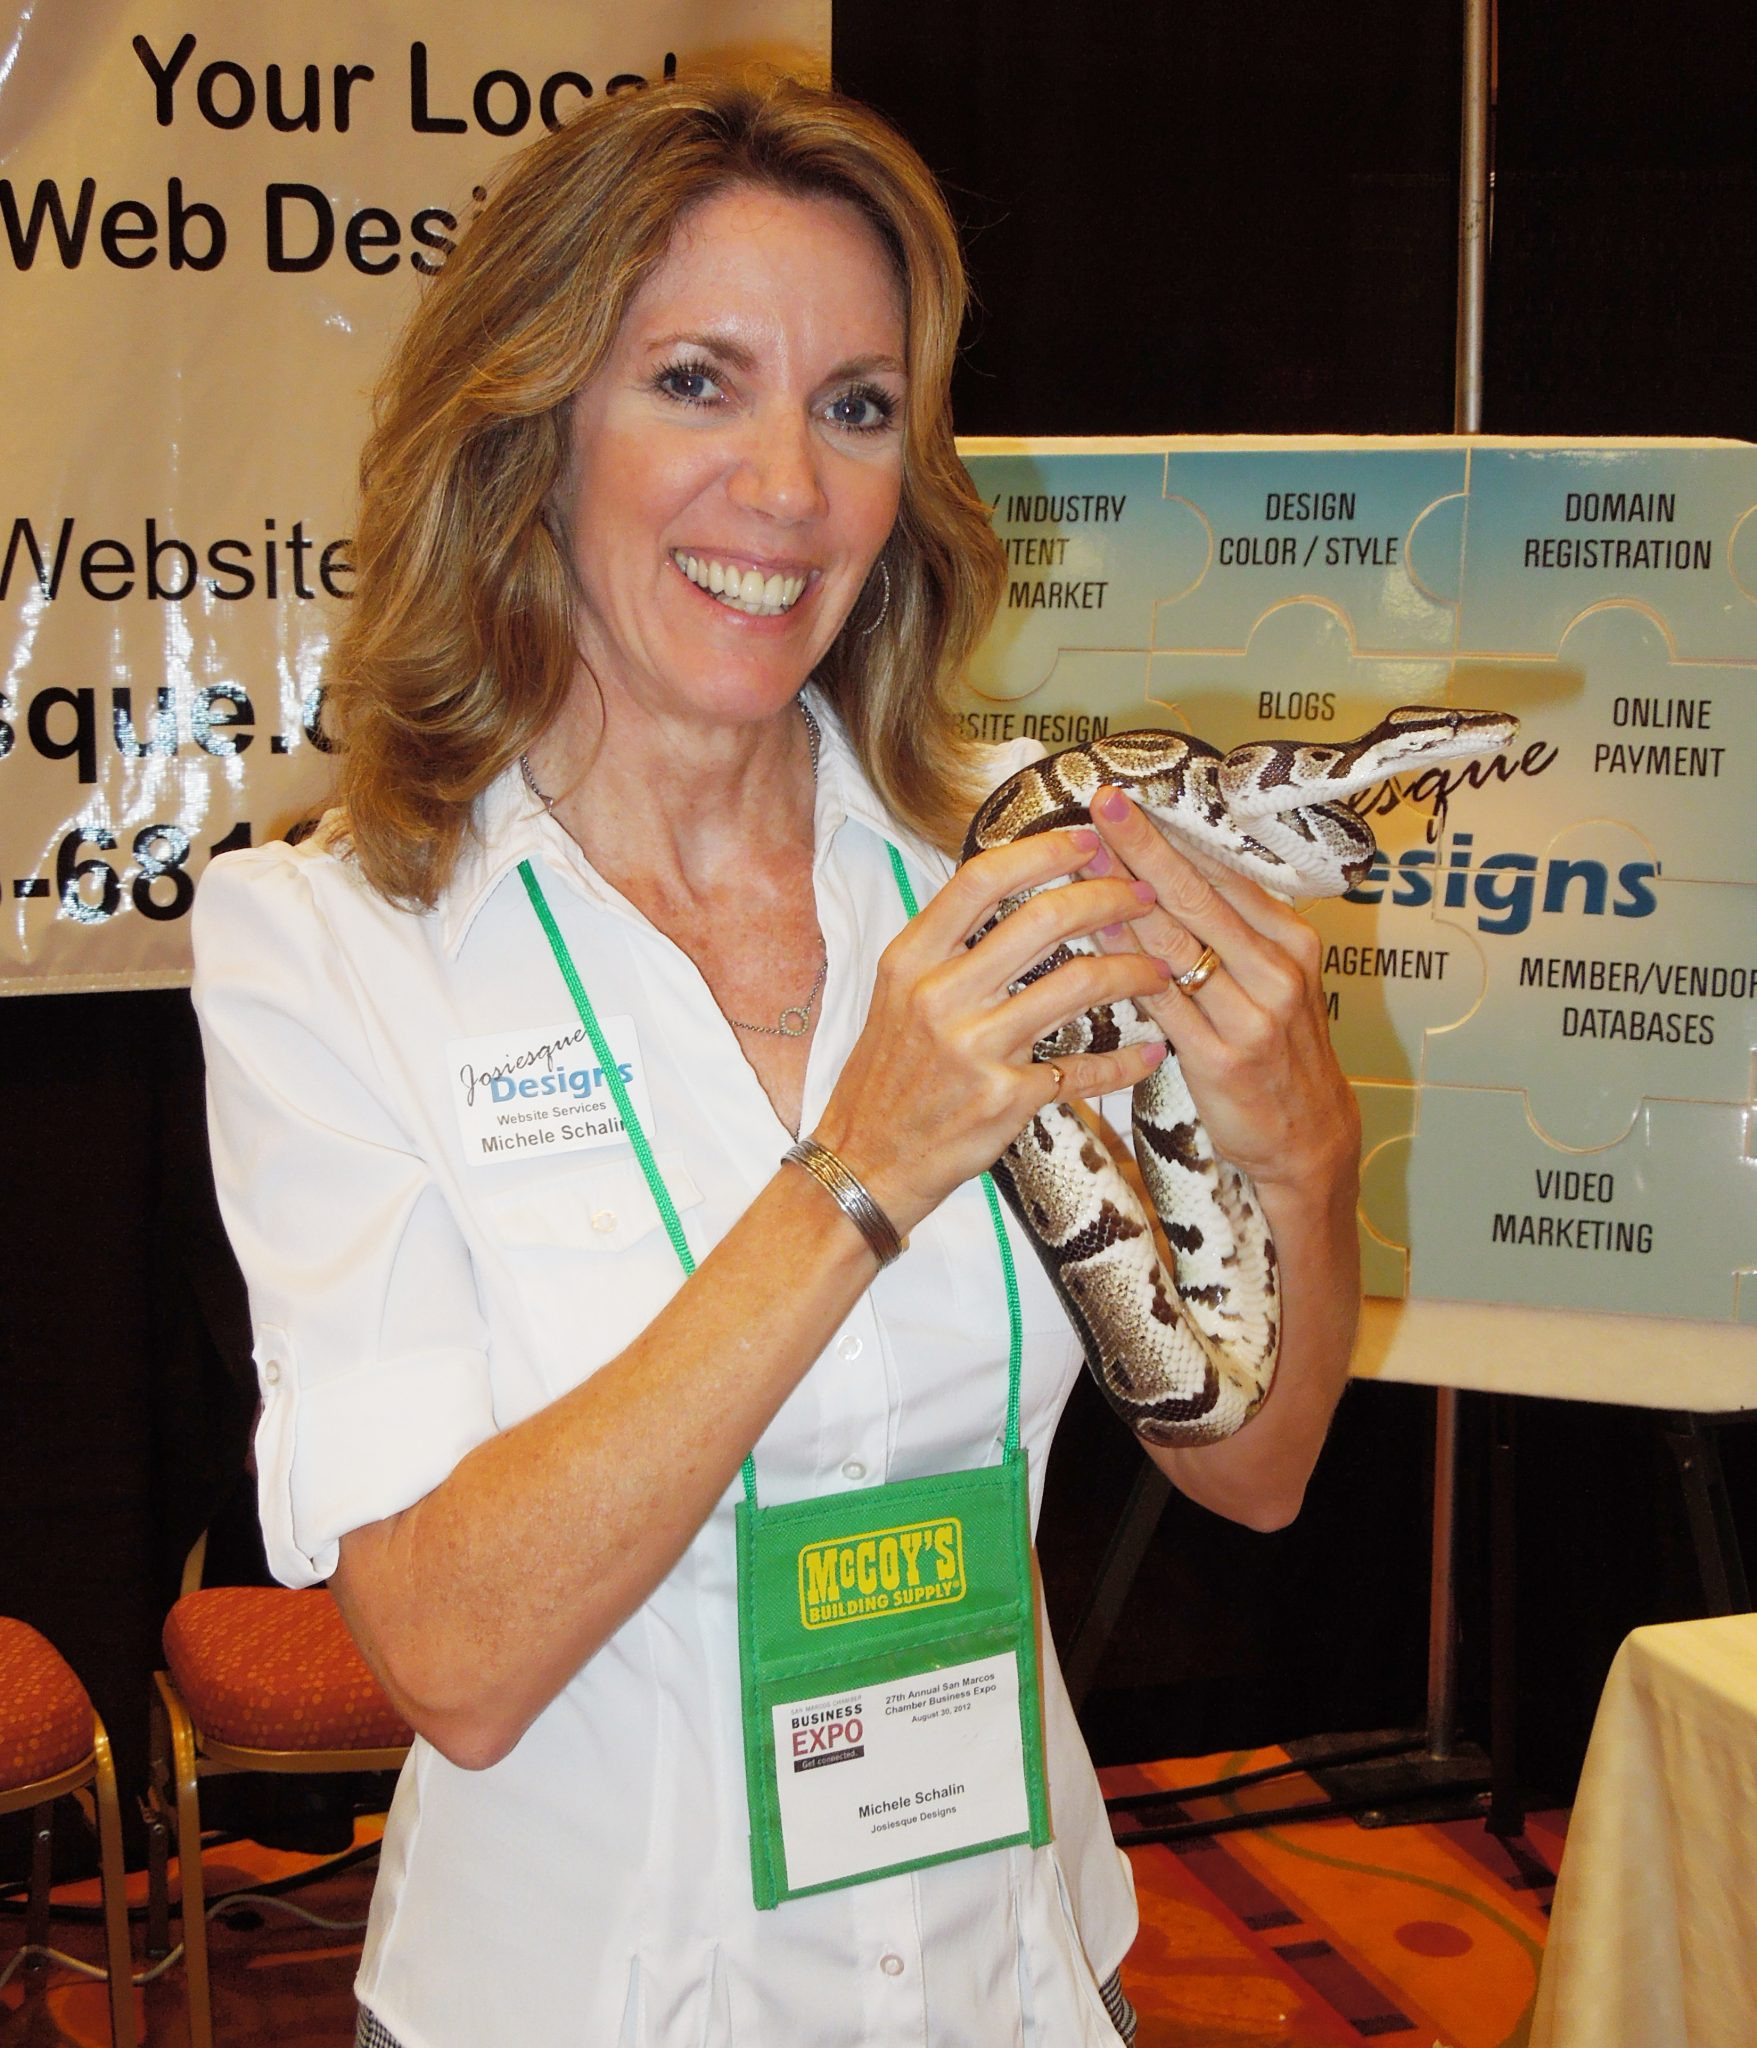 Michele Schalin with Josiesque Designs with a snake from the San Marcos Nature Center